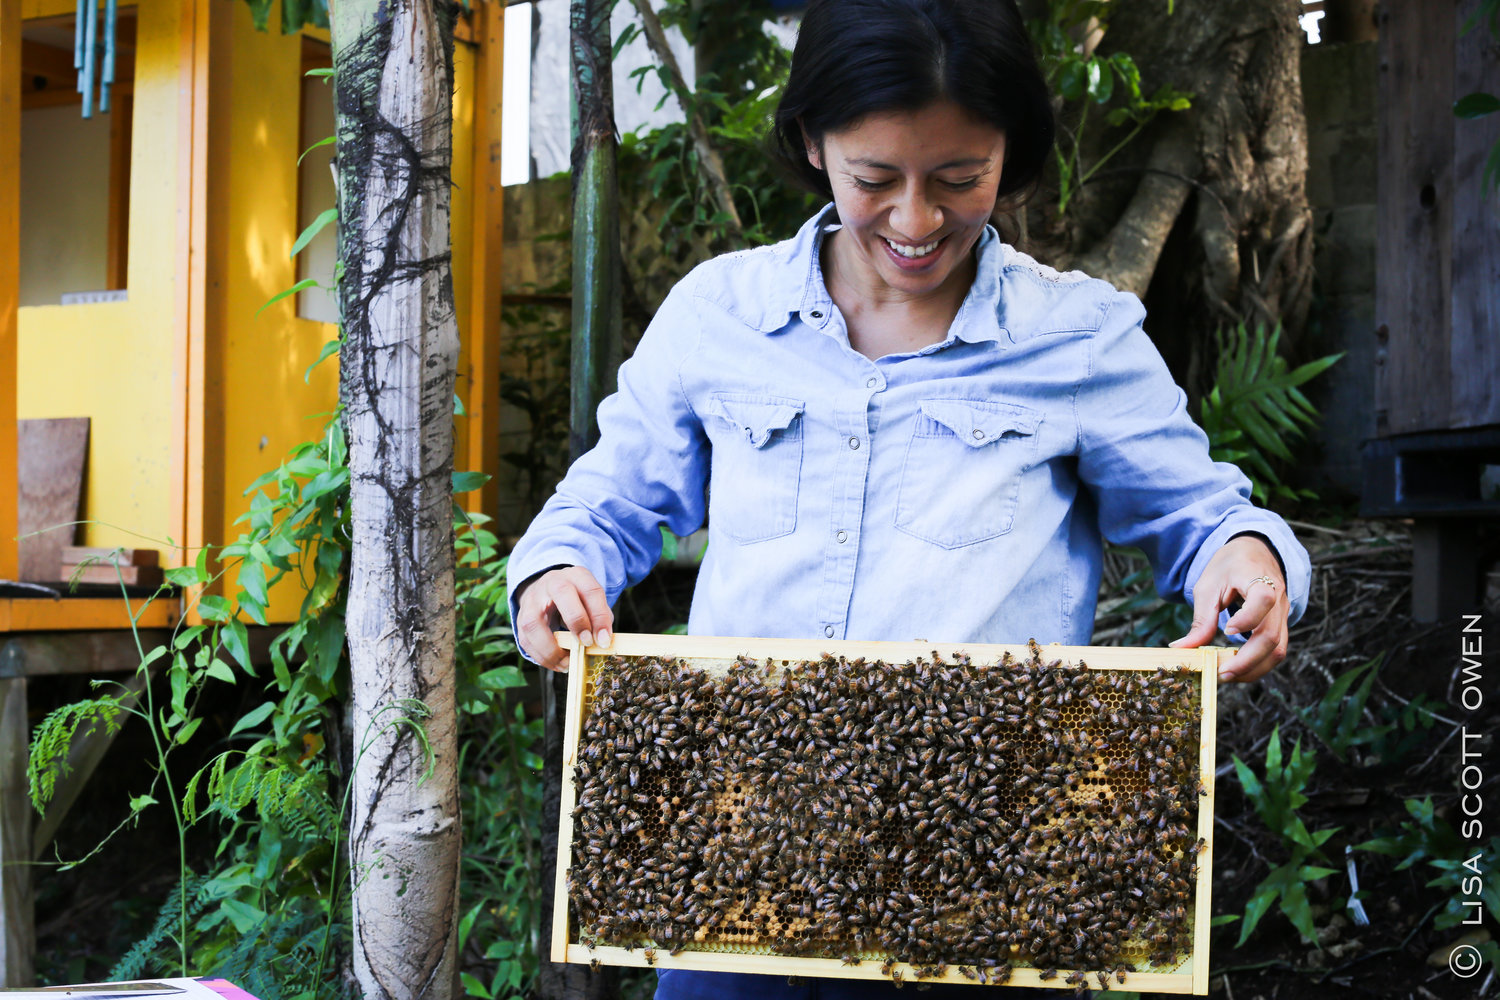 Jasmine Joy - Founder of Beelieve Hawai'i and Co-founder of Hawai'i Bee Collective